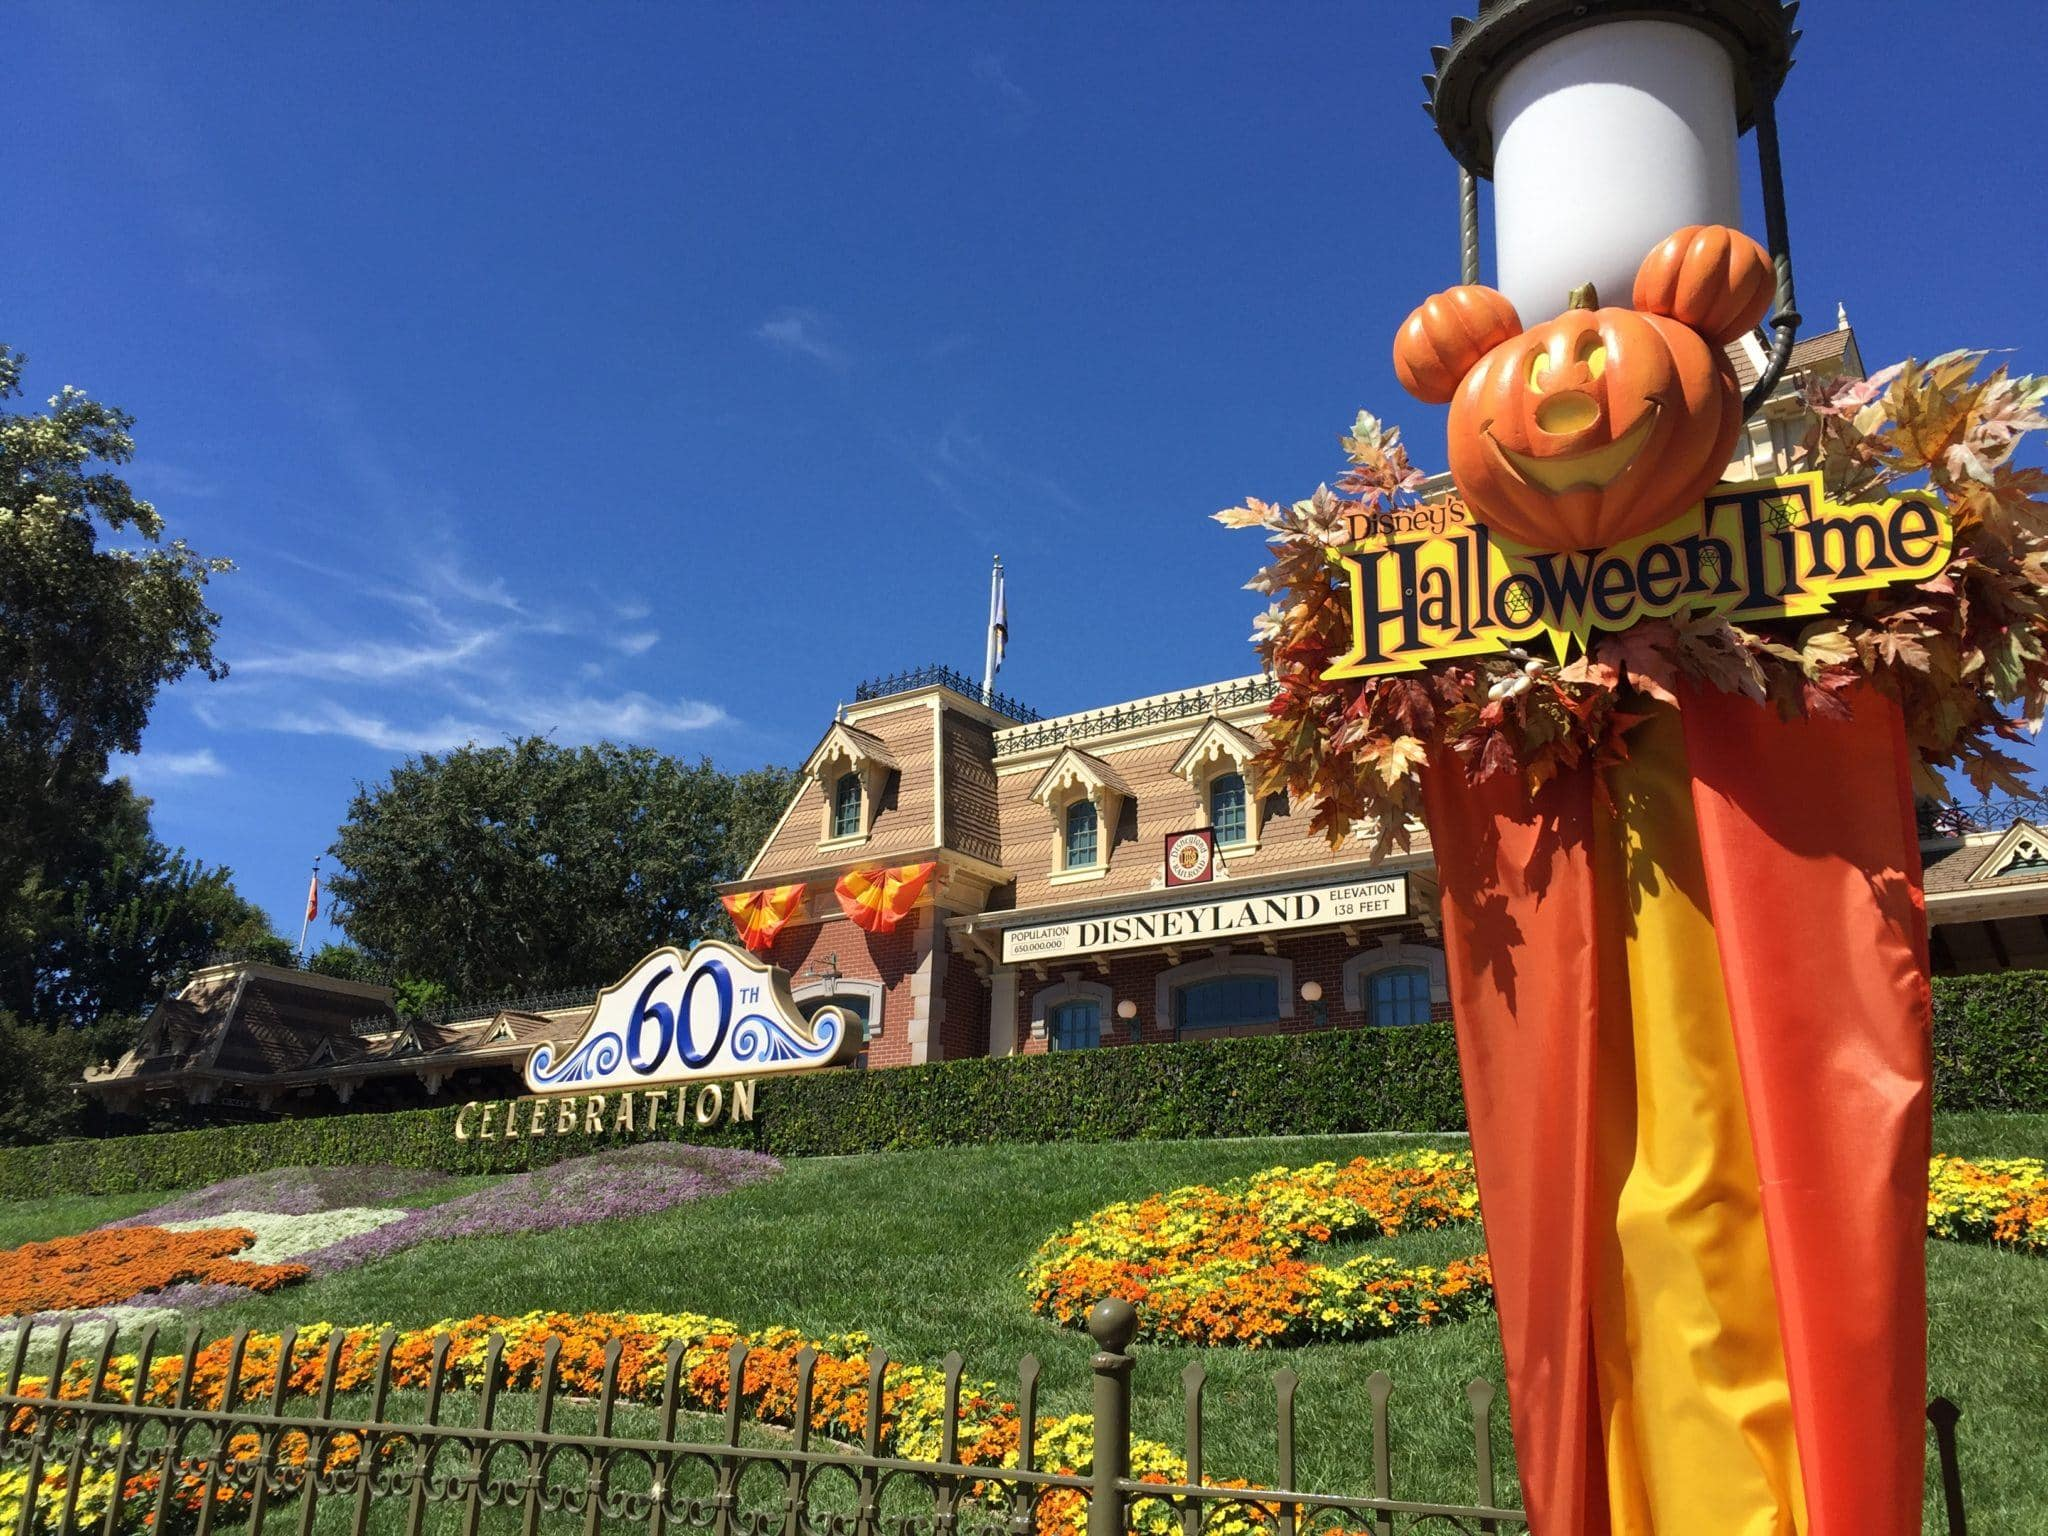 Diamond Anniversary and Halloween Time decorations at the entry to Disneyland